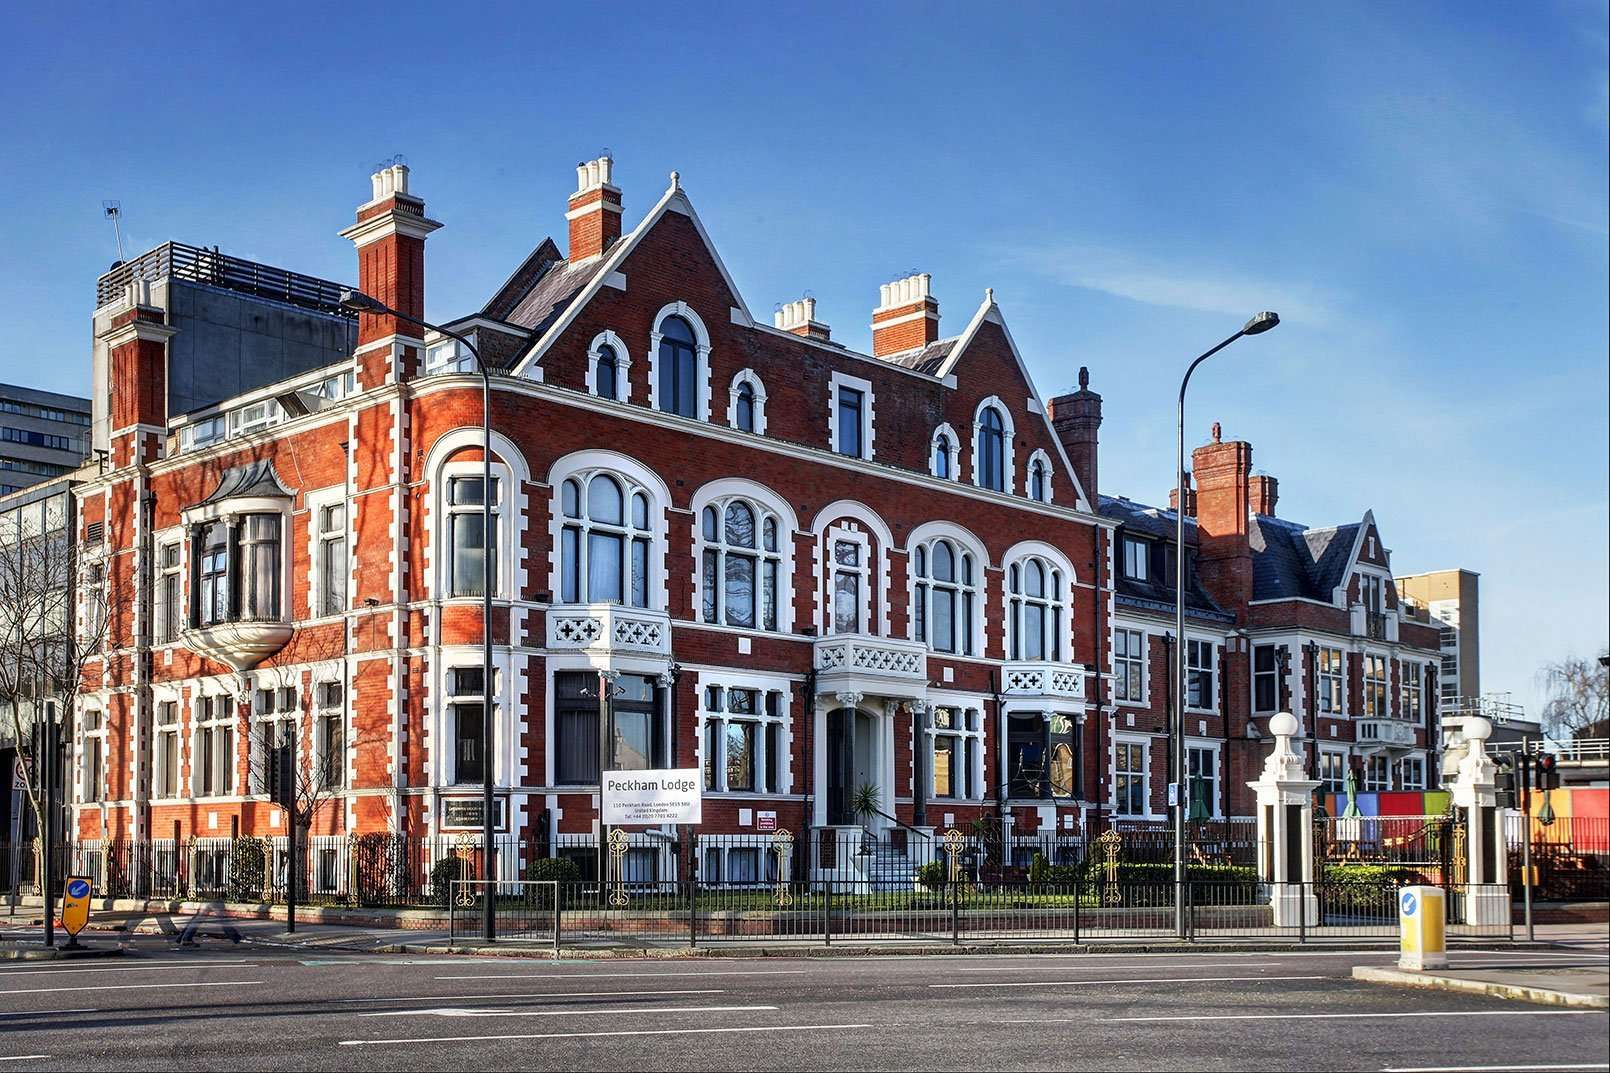 Peckham Lodge Hotel from London Hotel Group